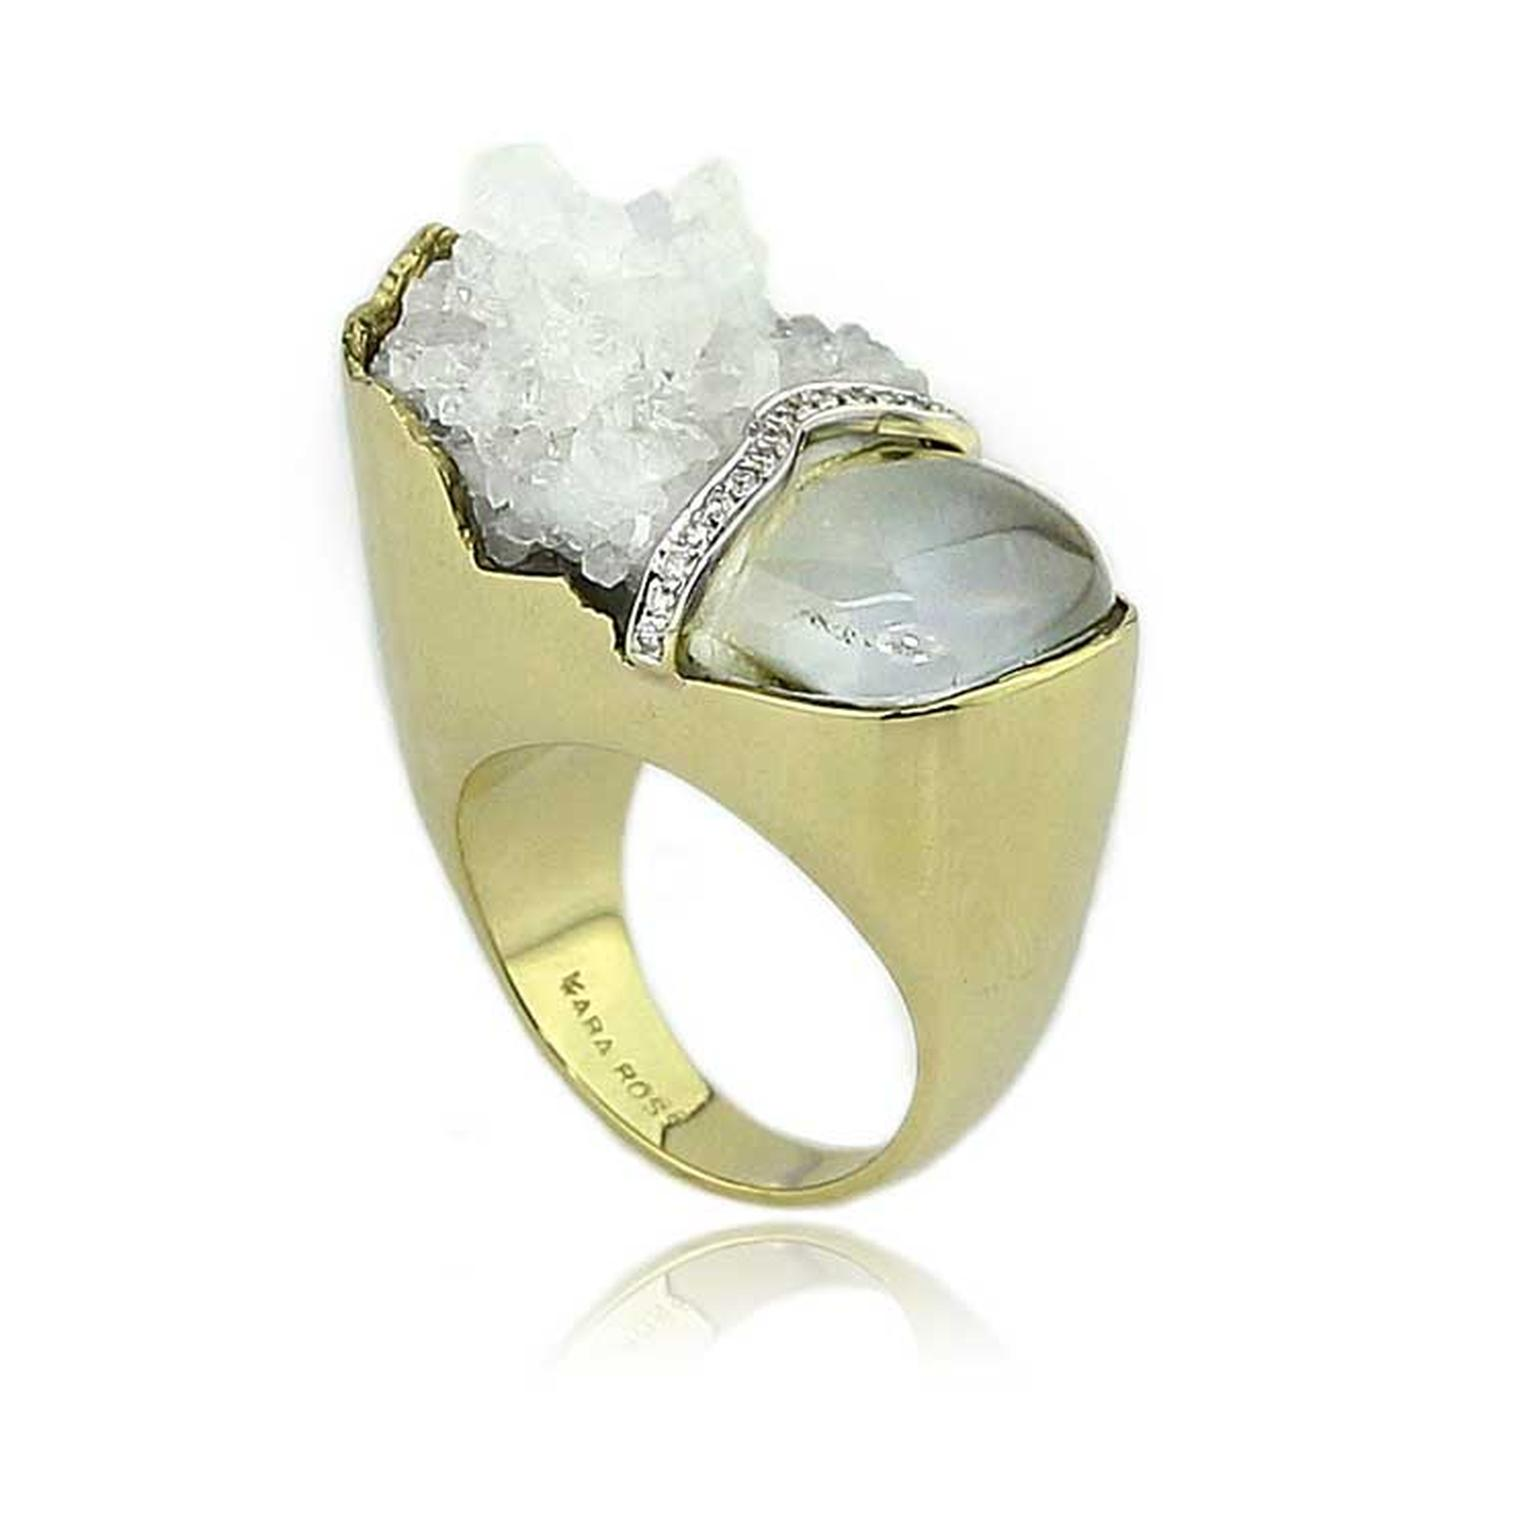 Kara Ross Petra Split ring with raw white quartz and smooth rock crystal